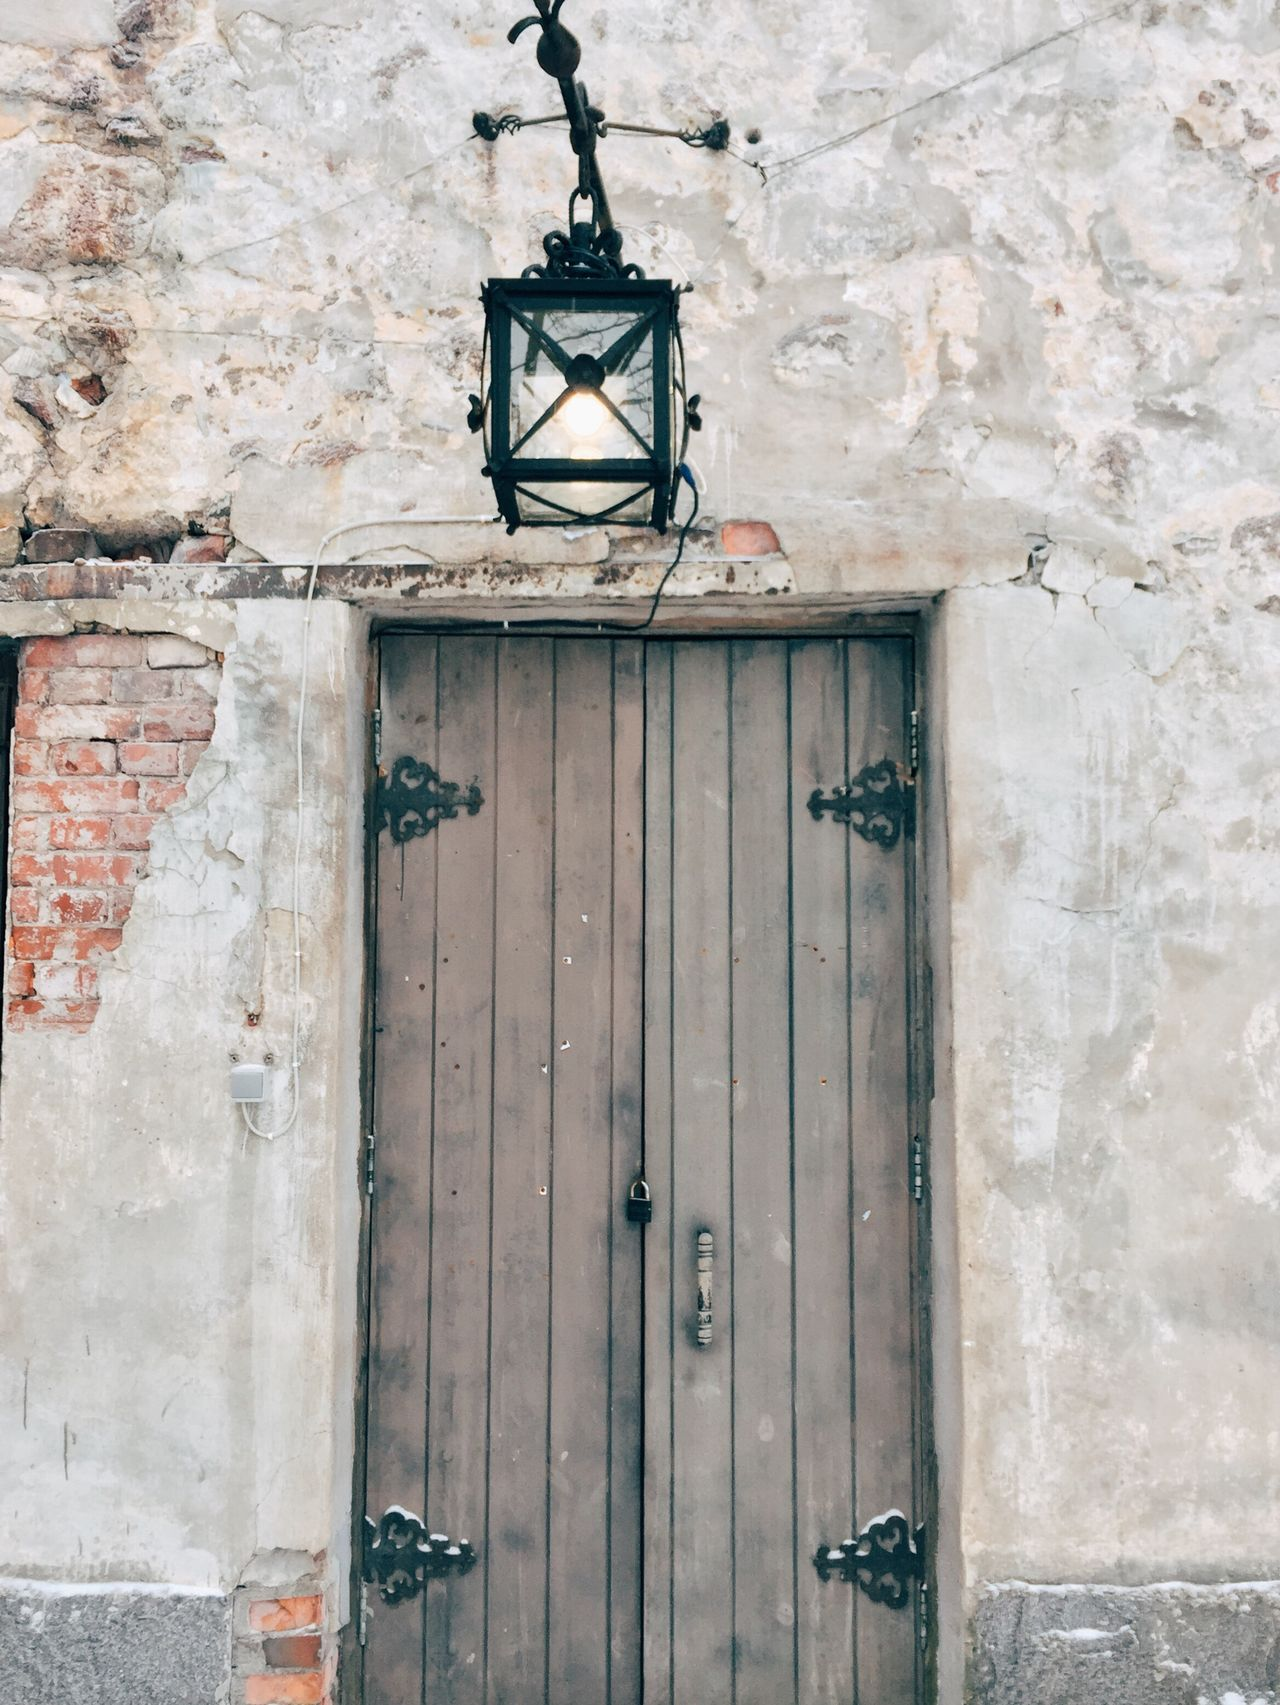 Built Structure Old Door Architecture Wood - Material Lighting Equipment Hanging Entrance No People Old-fashioned House Building Exterior Day Low Angle View Outdoors